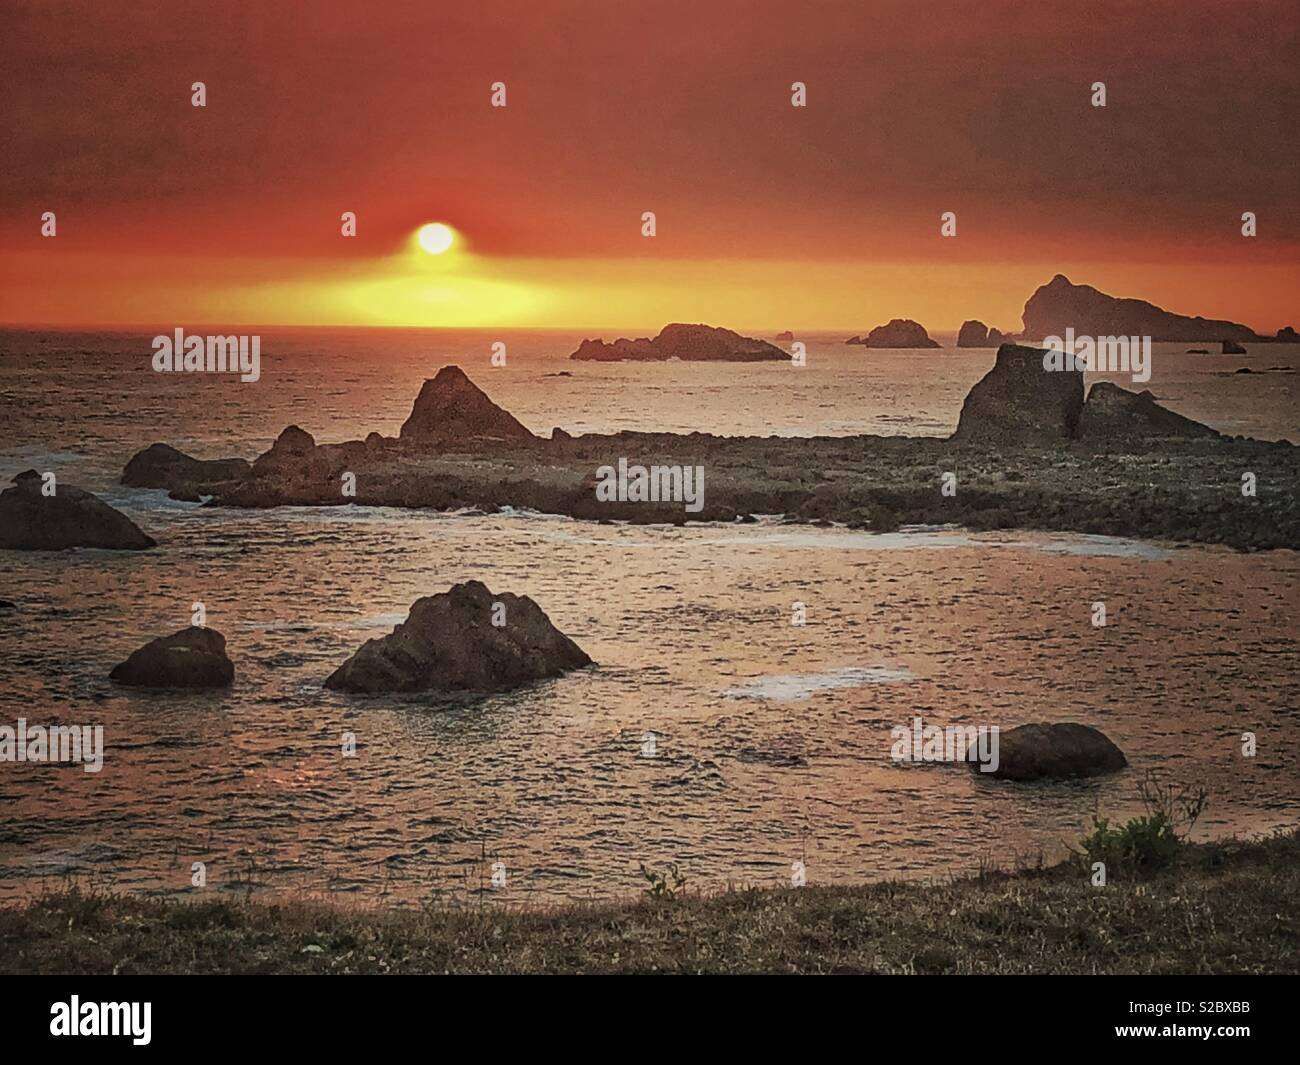 Sunset over the pacific. - Stock Image